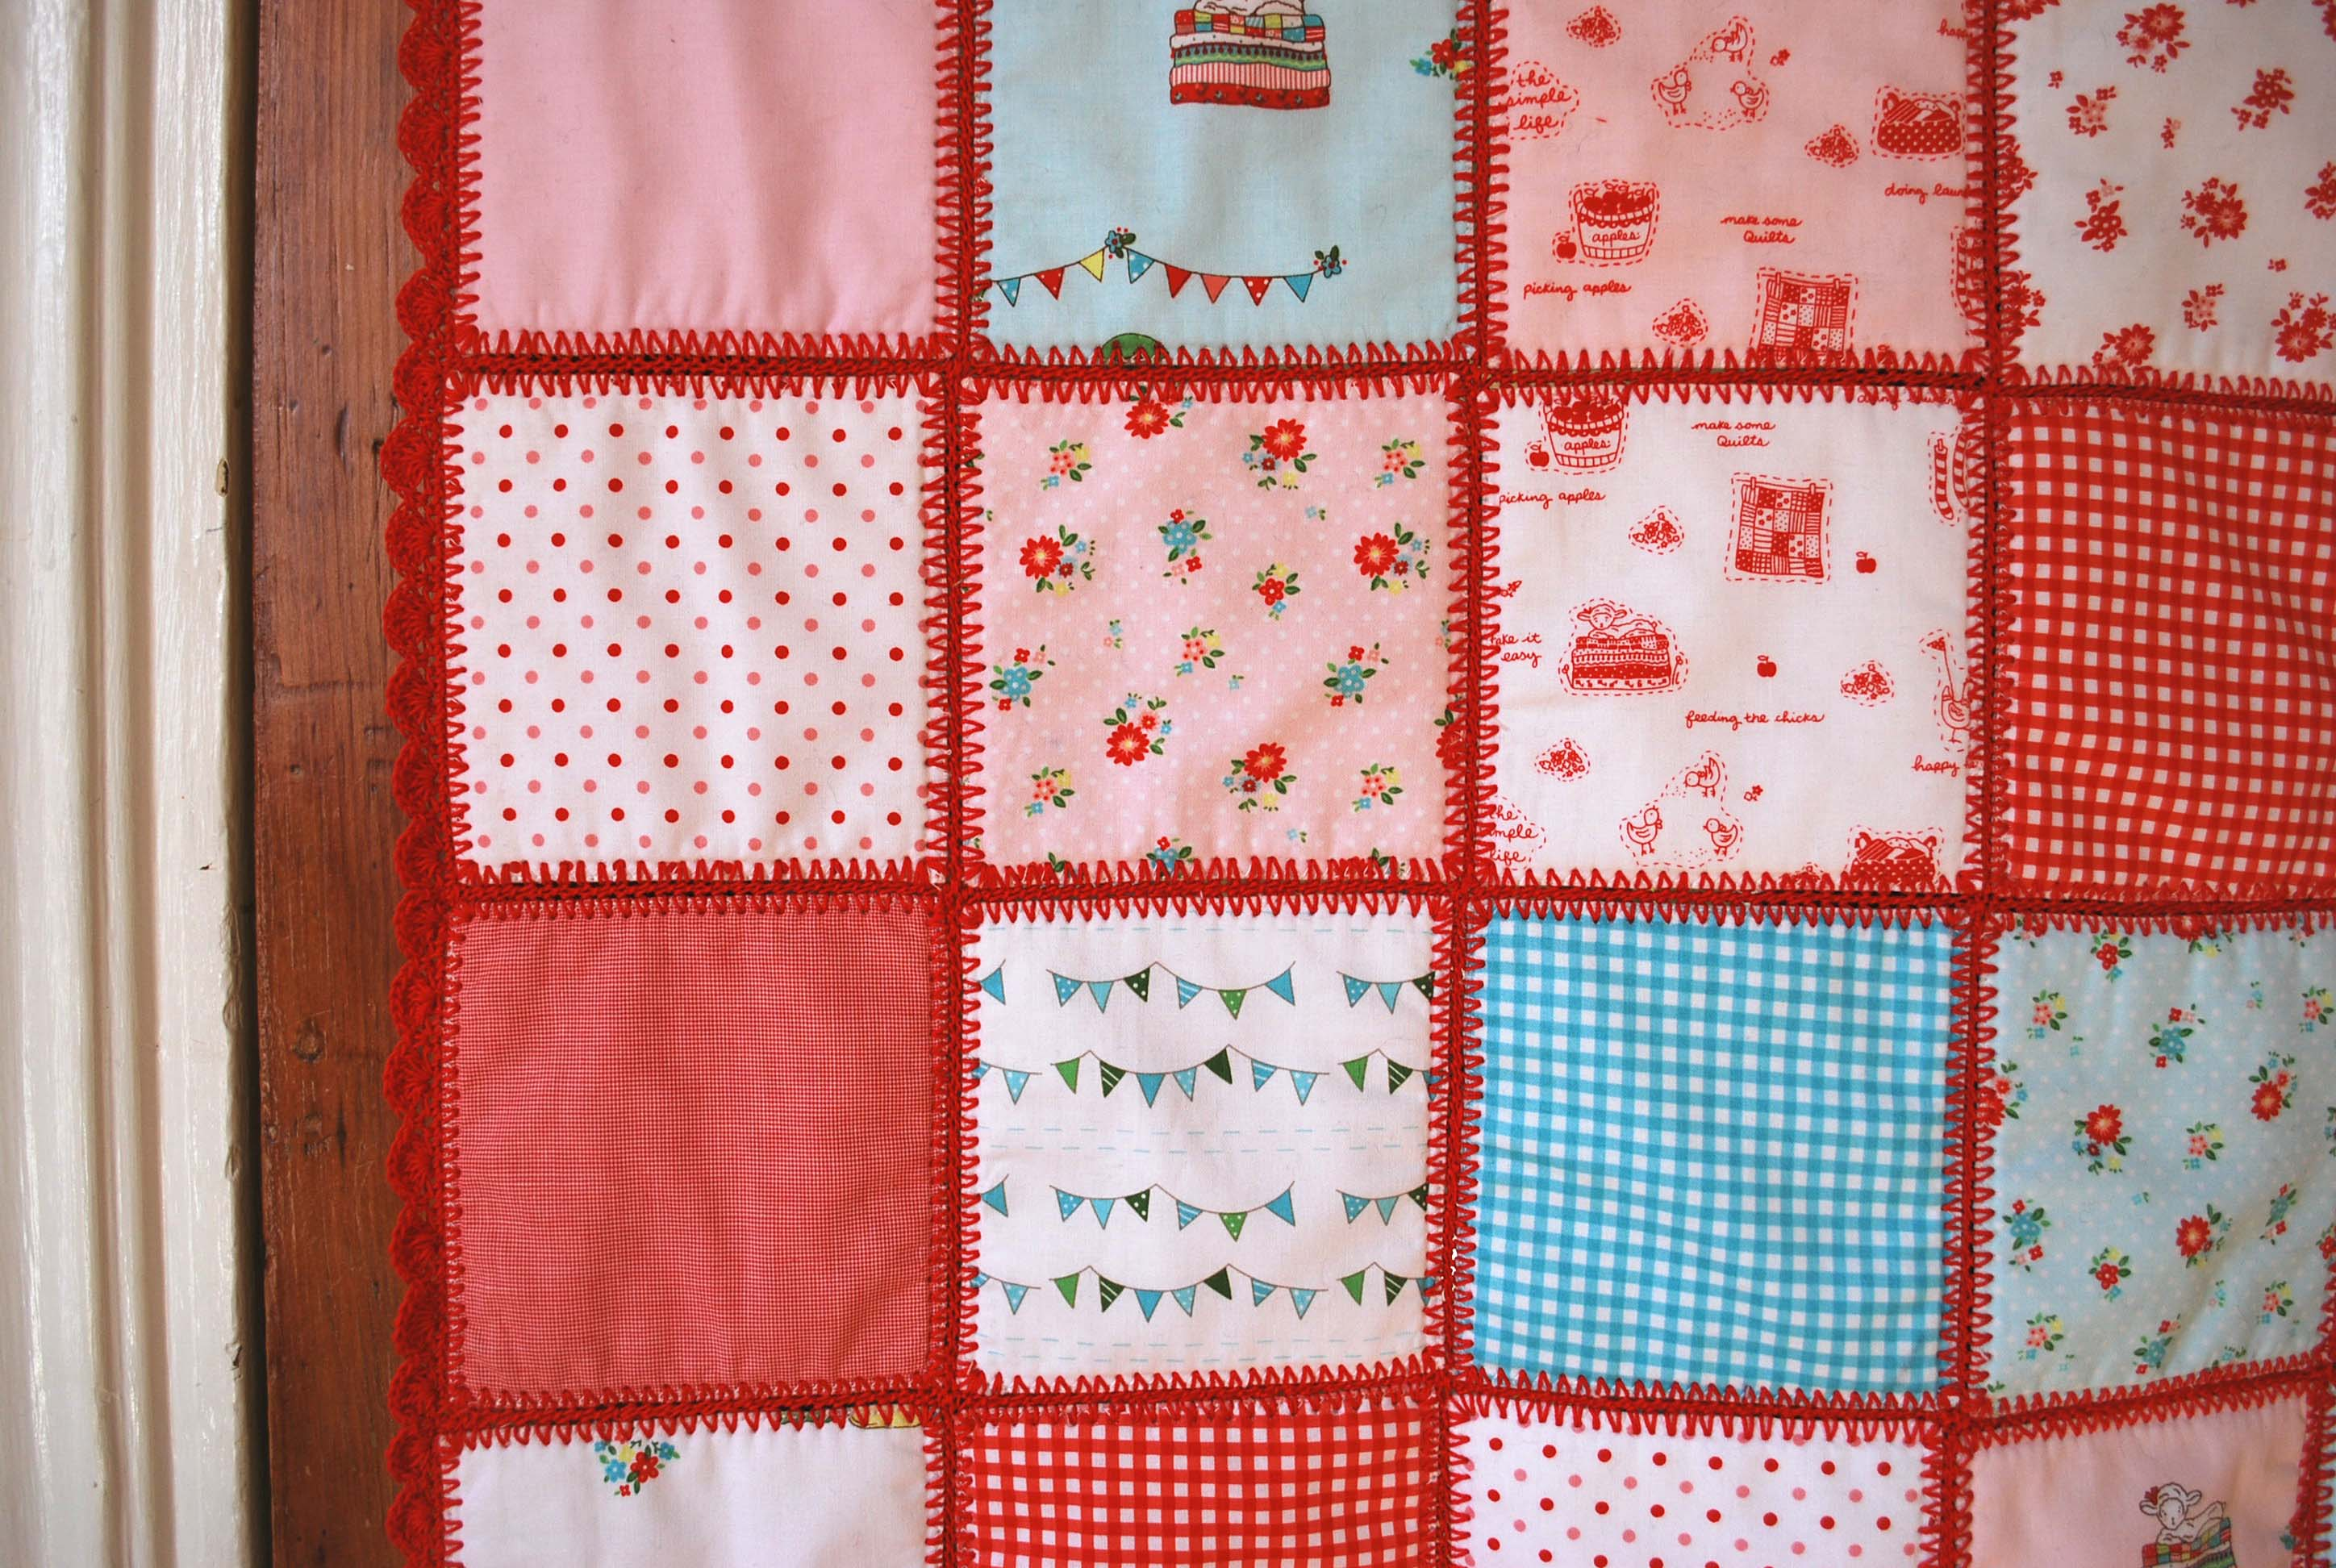 Crocheting A Baby Quilt : ... putting together more of our Crochet Baby Patchwork Quilt Kits